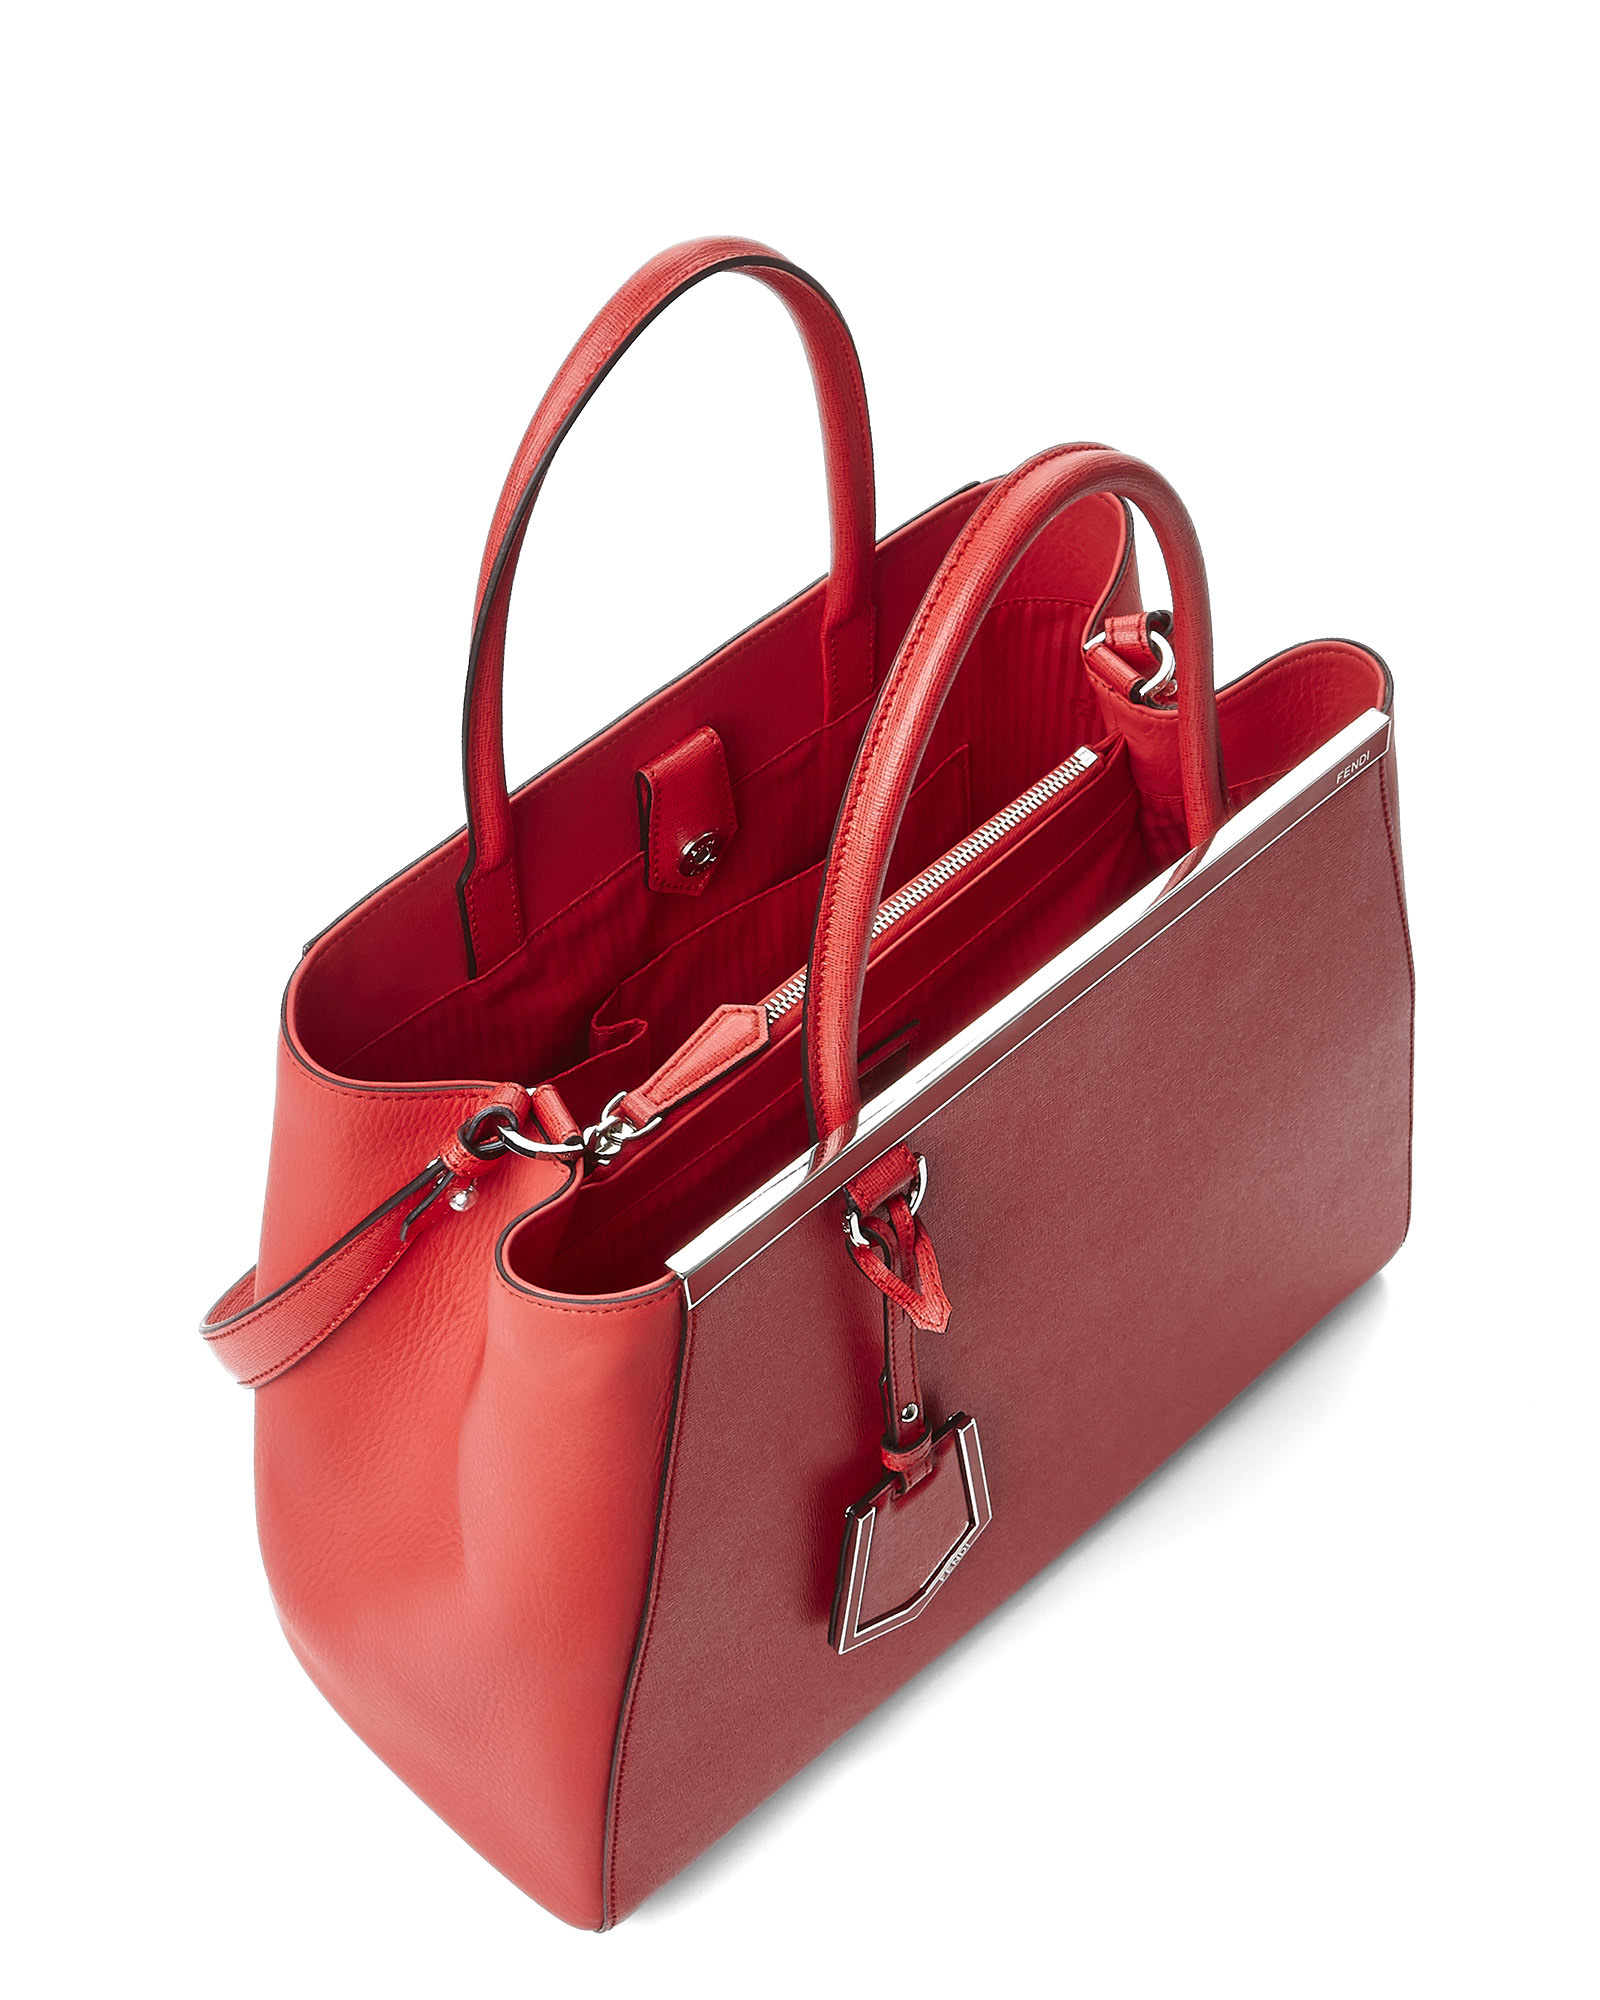 06aeea4b9c16 Lyst - Fendi Coral 2Jours Tote in Red